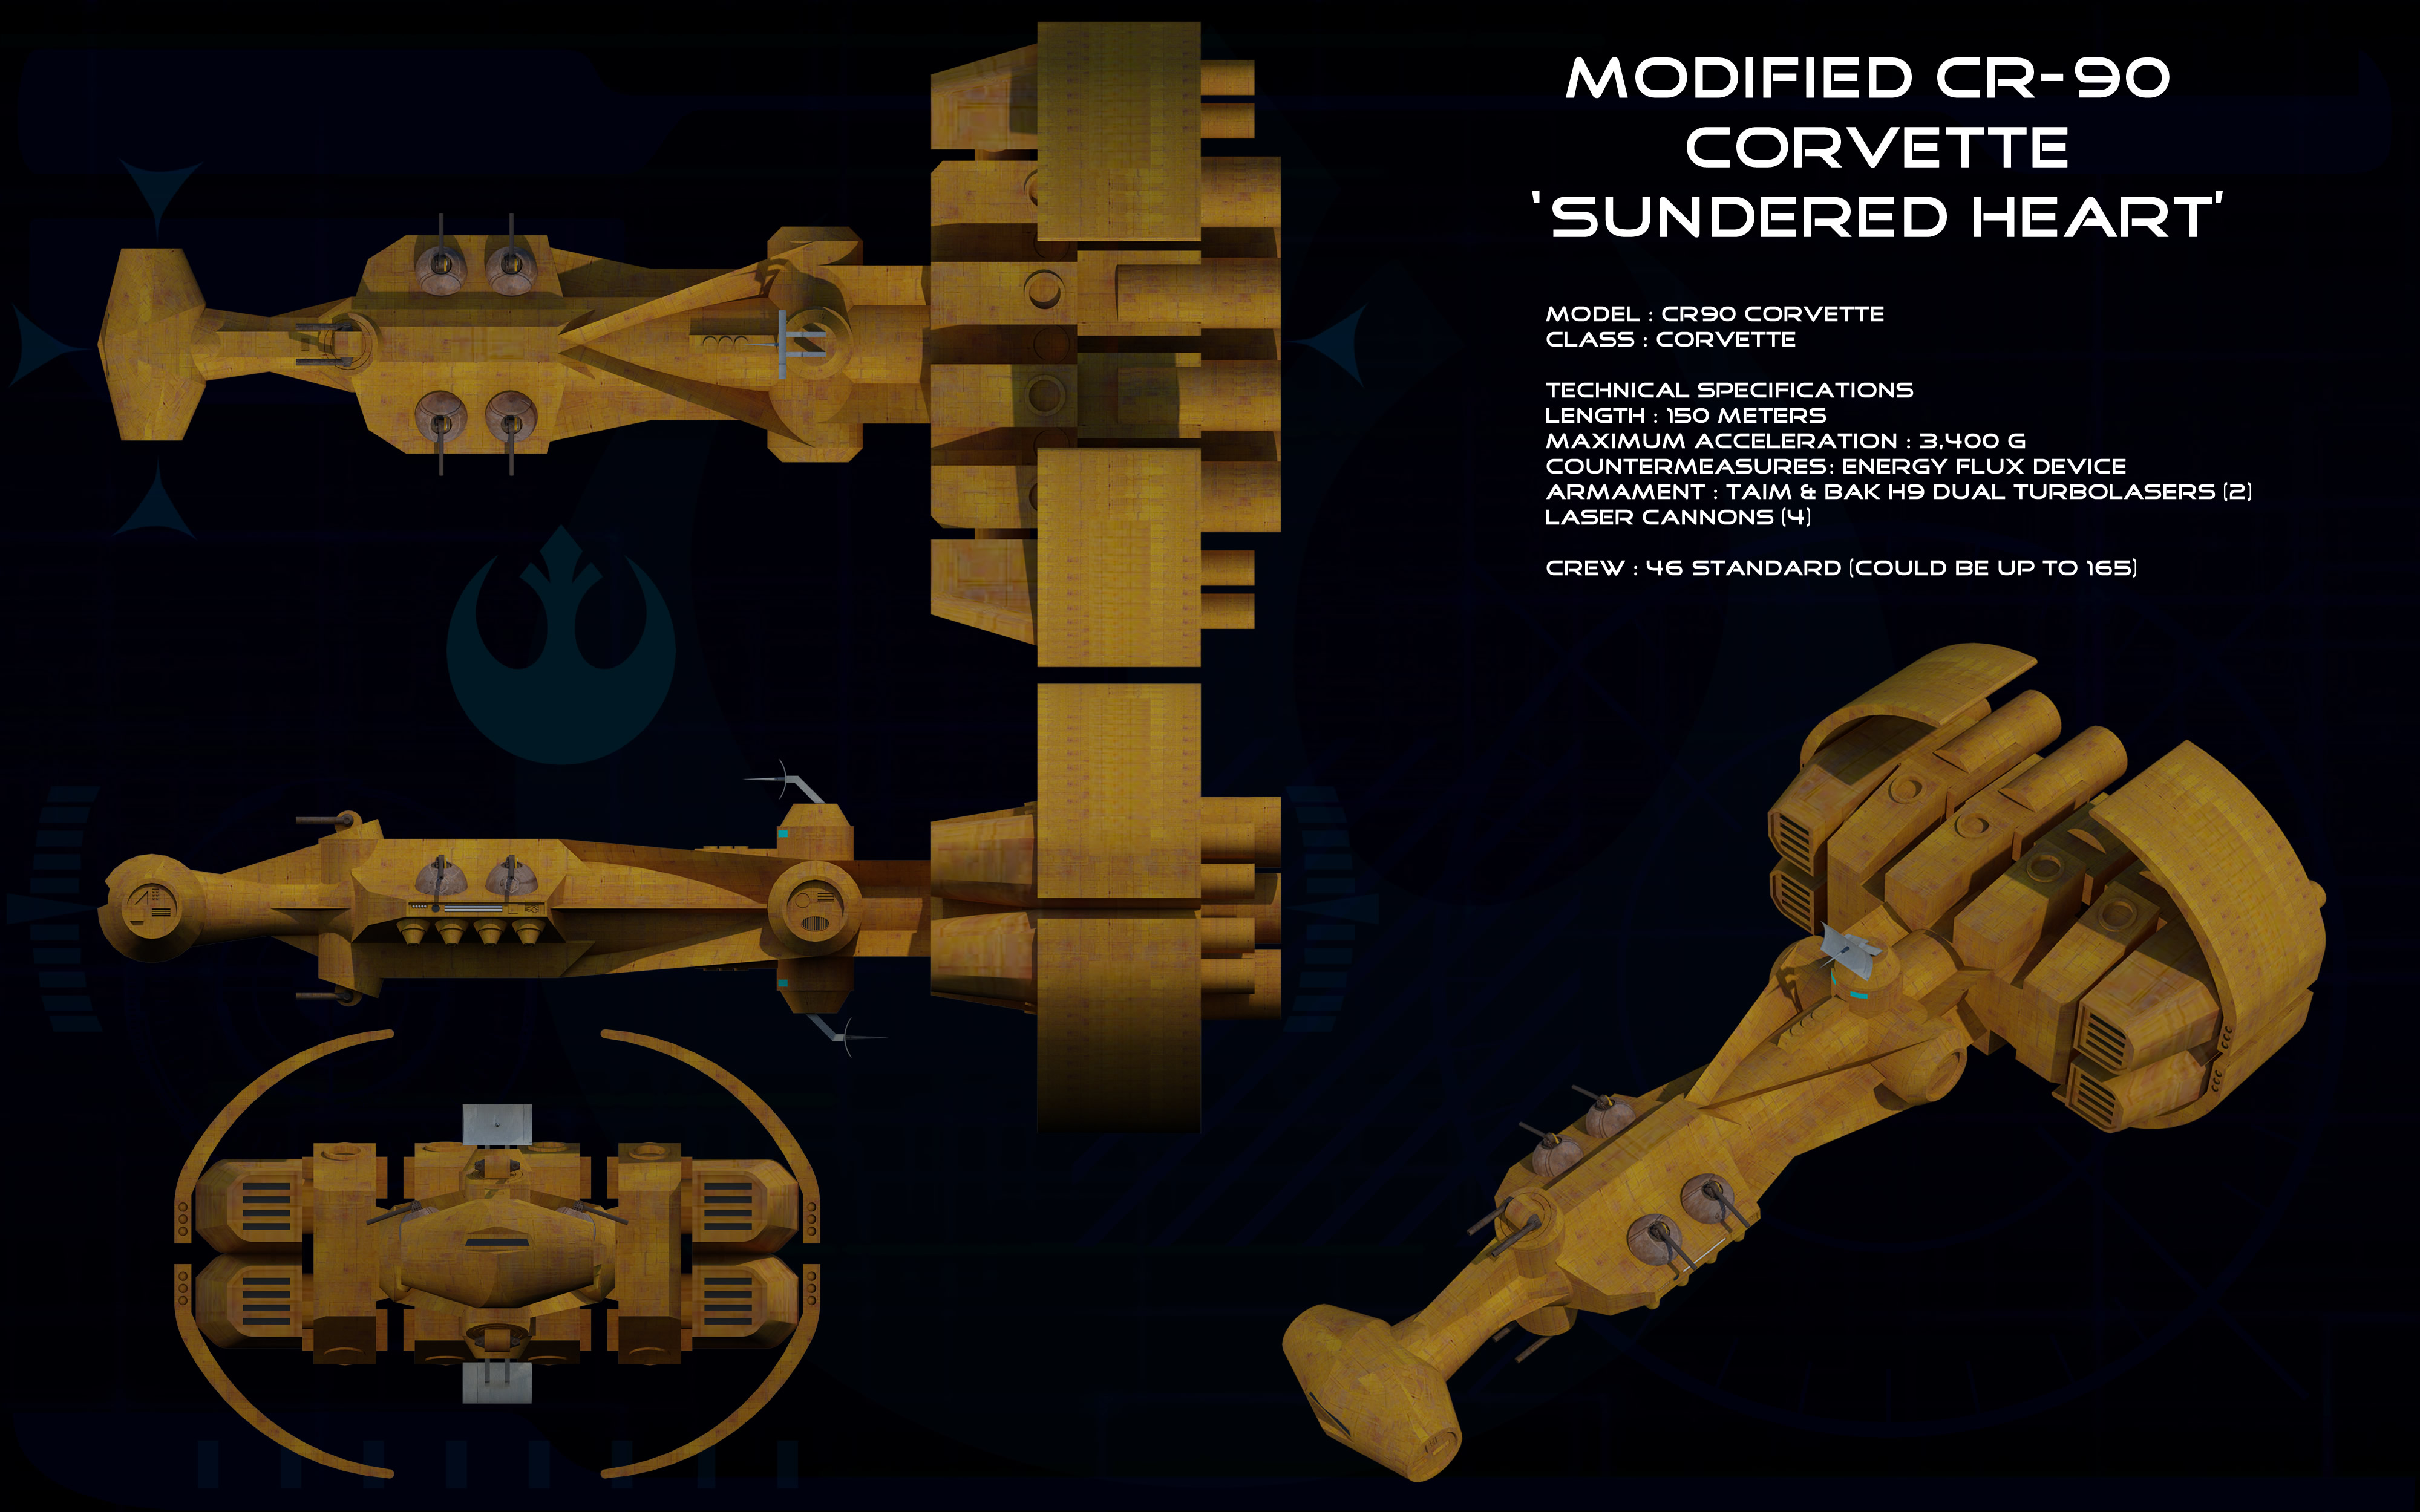 Sundered Heart Modified Cr 90 Corvette Ortho By Unusualsuspex On Deviantart